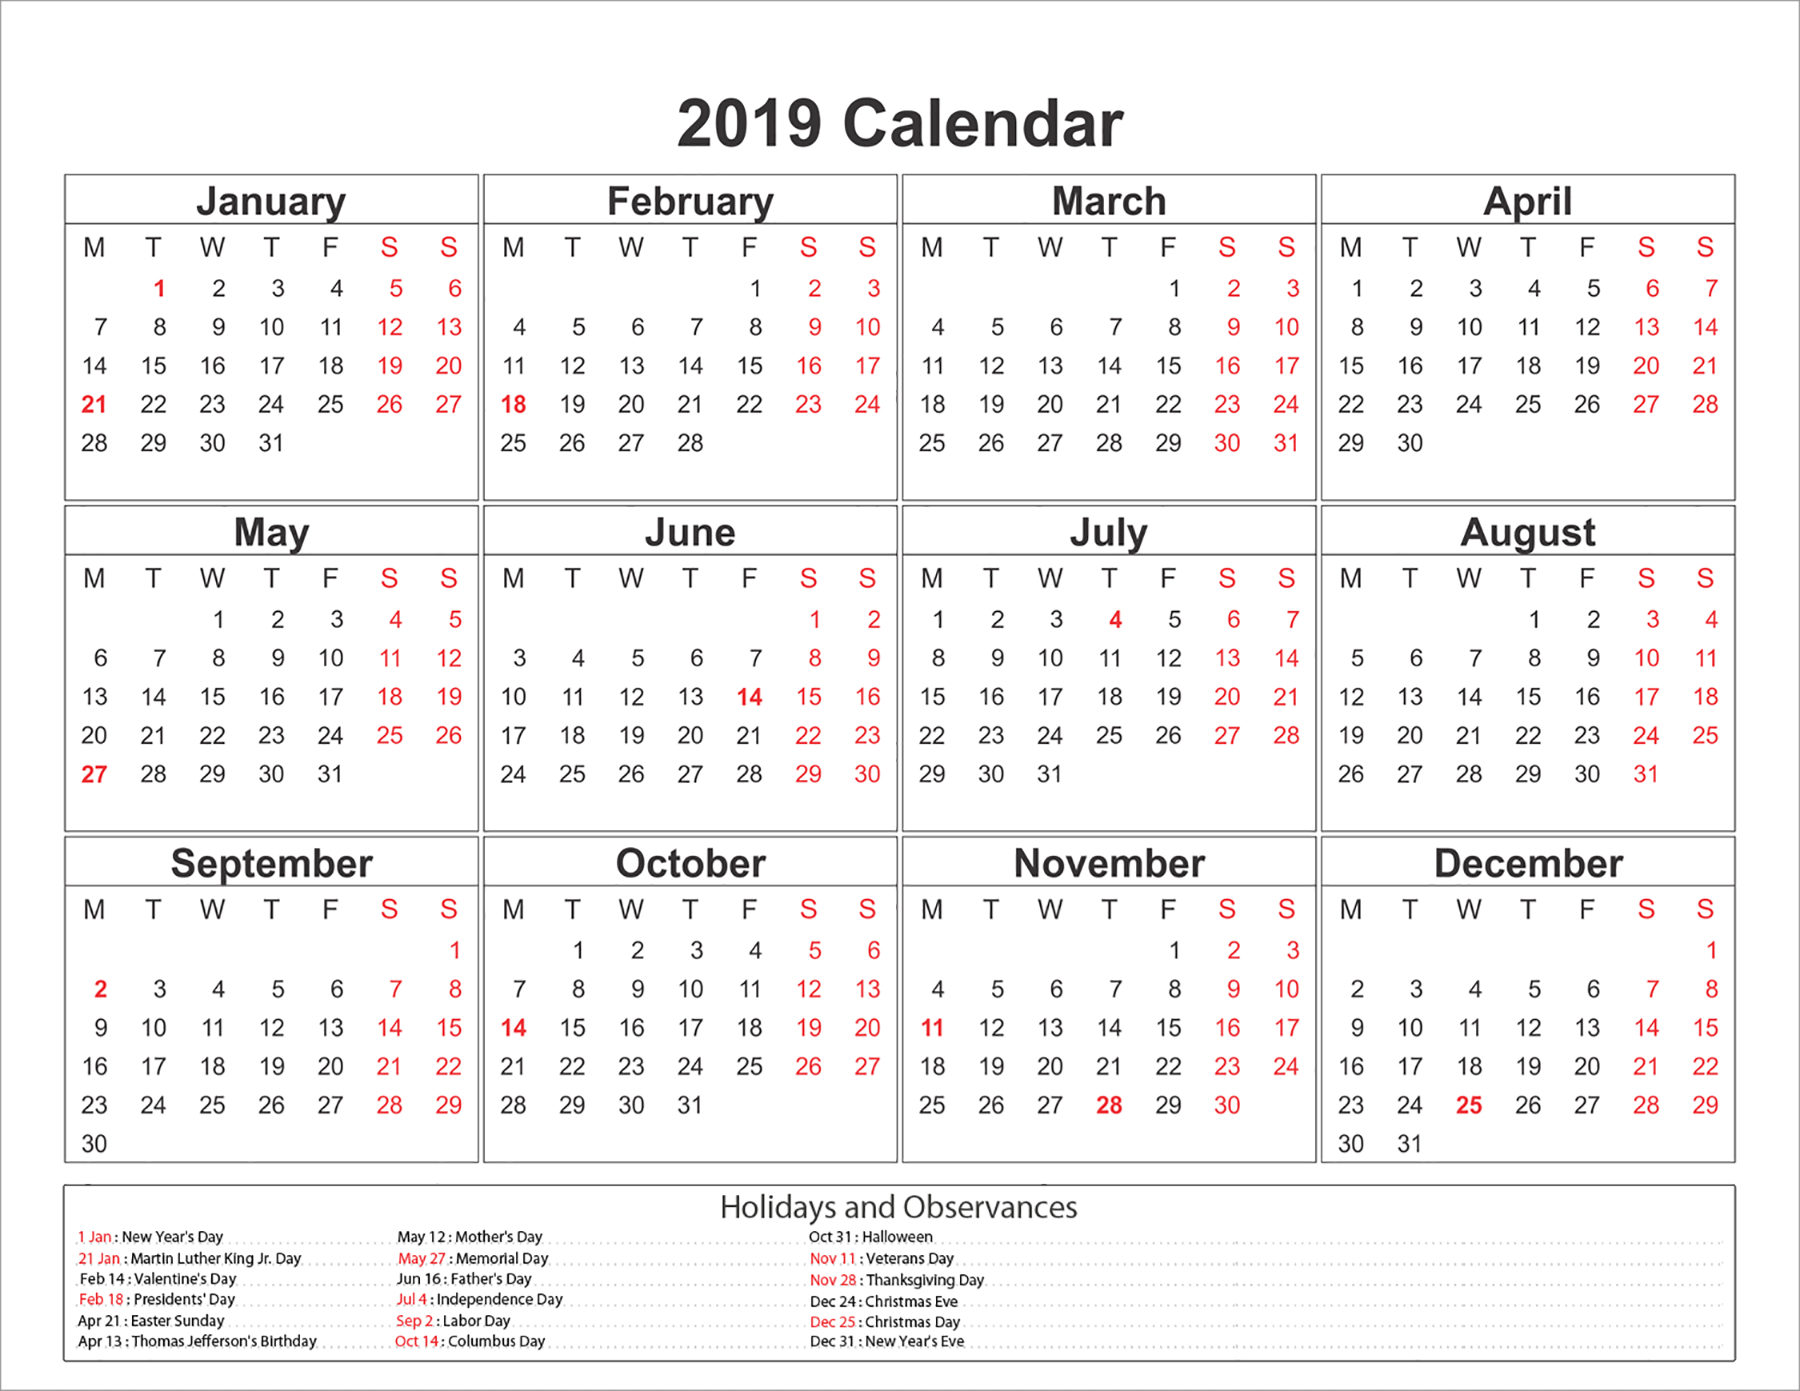 2019 Calendar With 12 Month Template To Print - Printable Monthly regarding 12 Month Monthly Calendar Template Printable